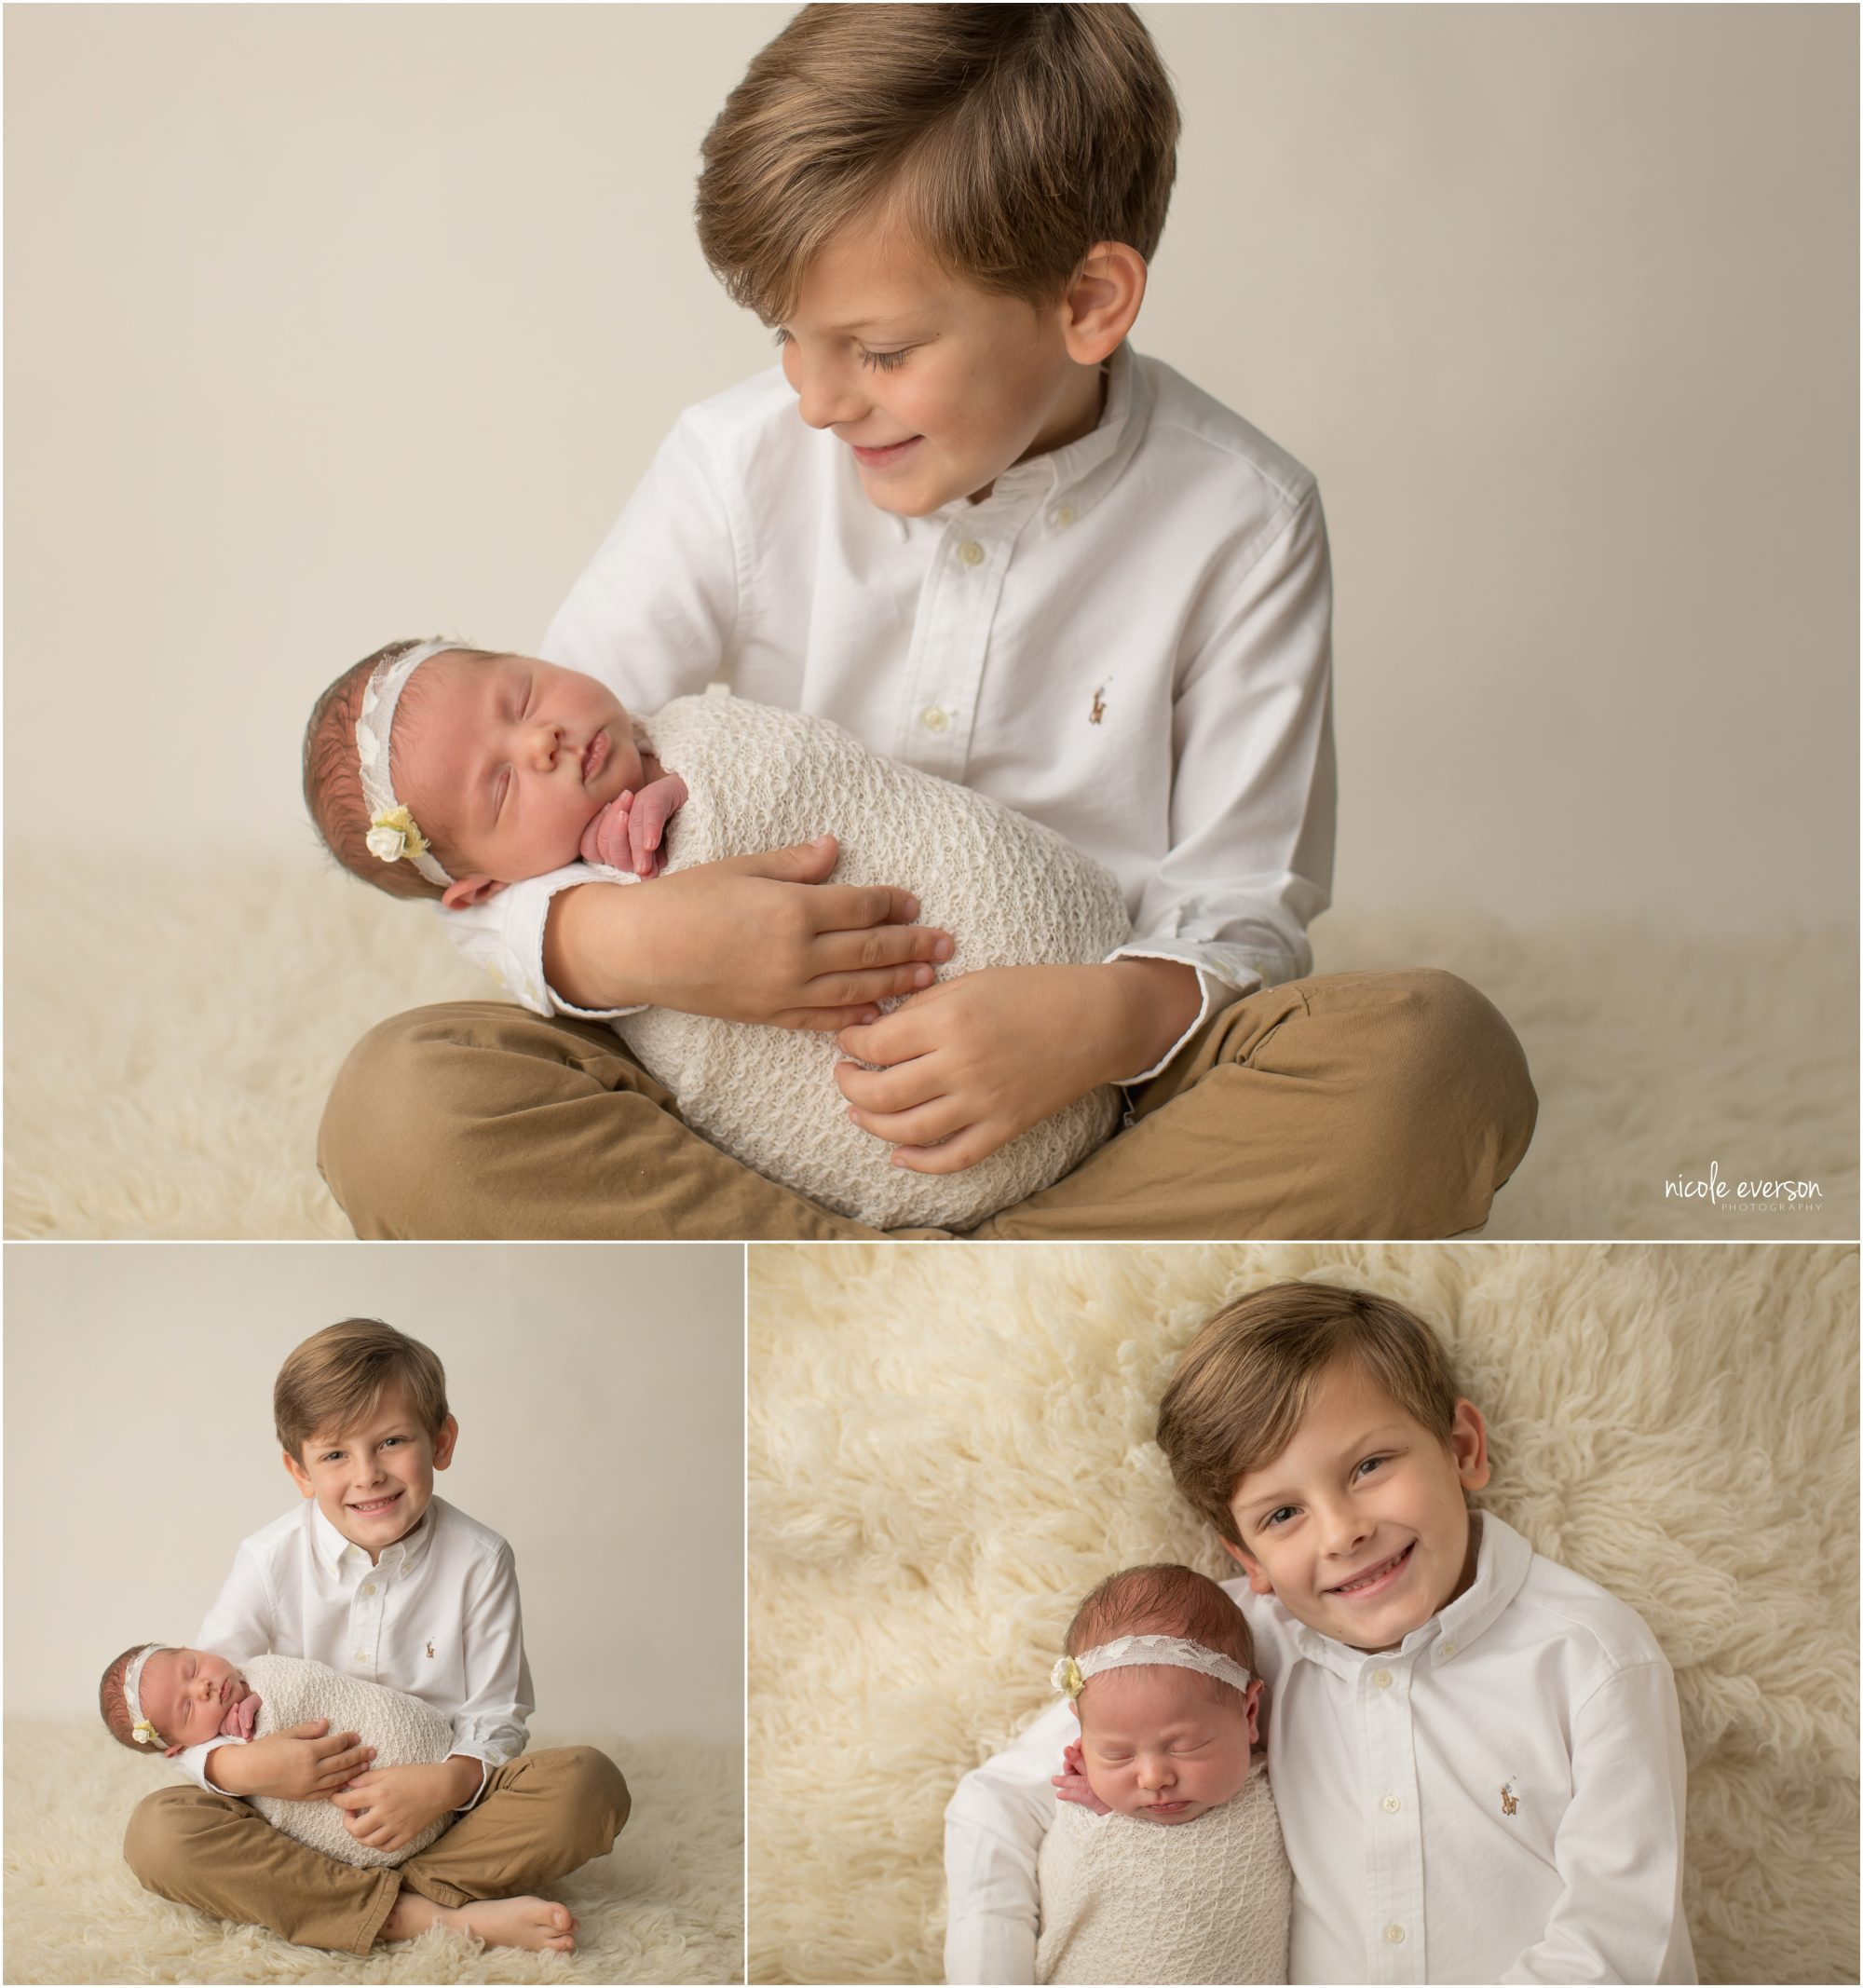 newborn picture with big brother holding baby sister on a cream photography backdrop